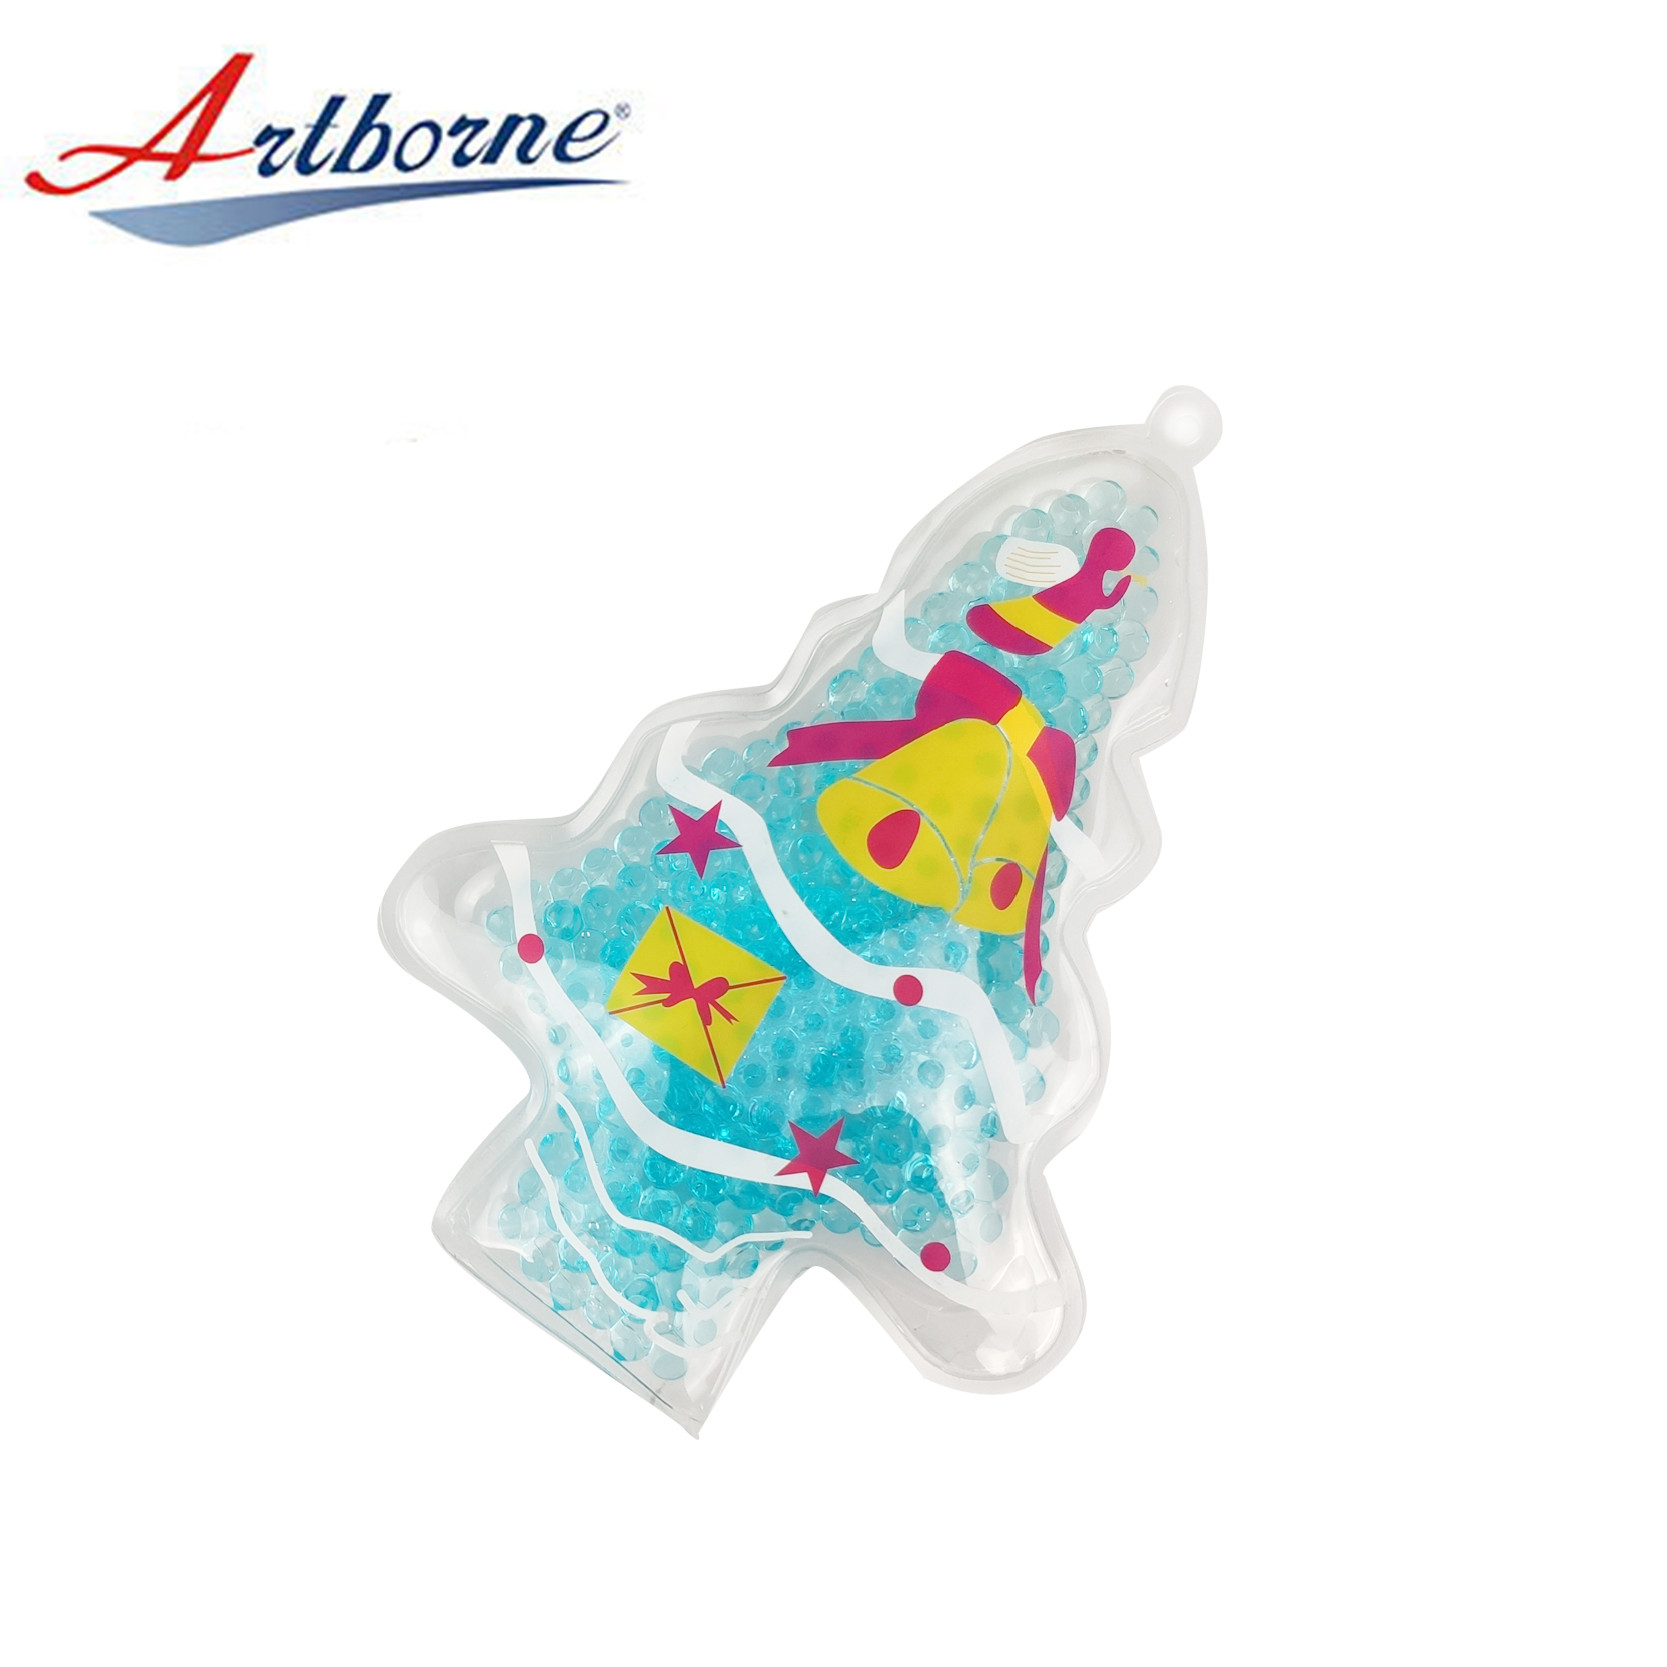 Artborne wholesale ice bag for injuries manufacturers for injuries-1